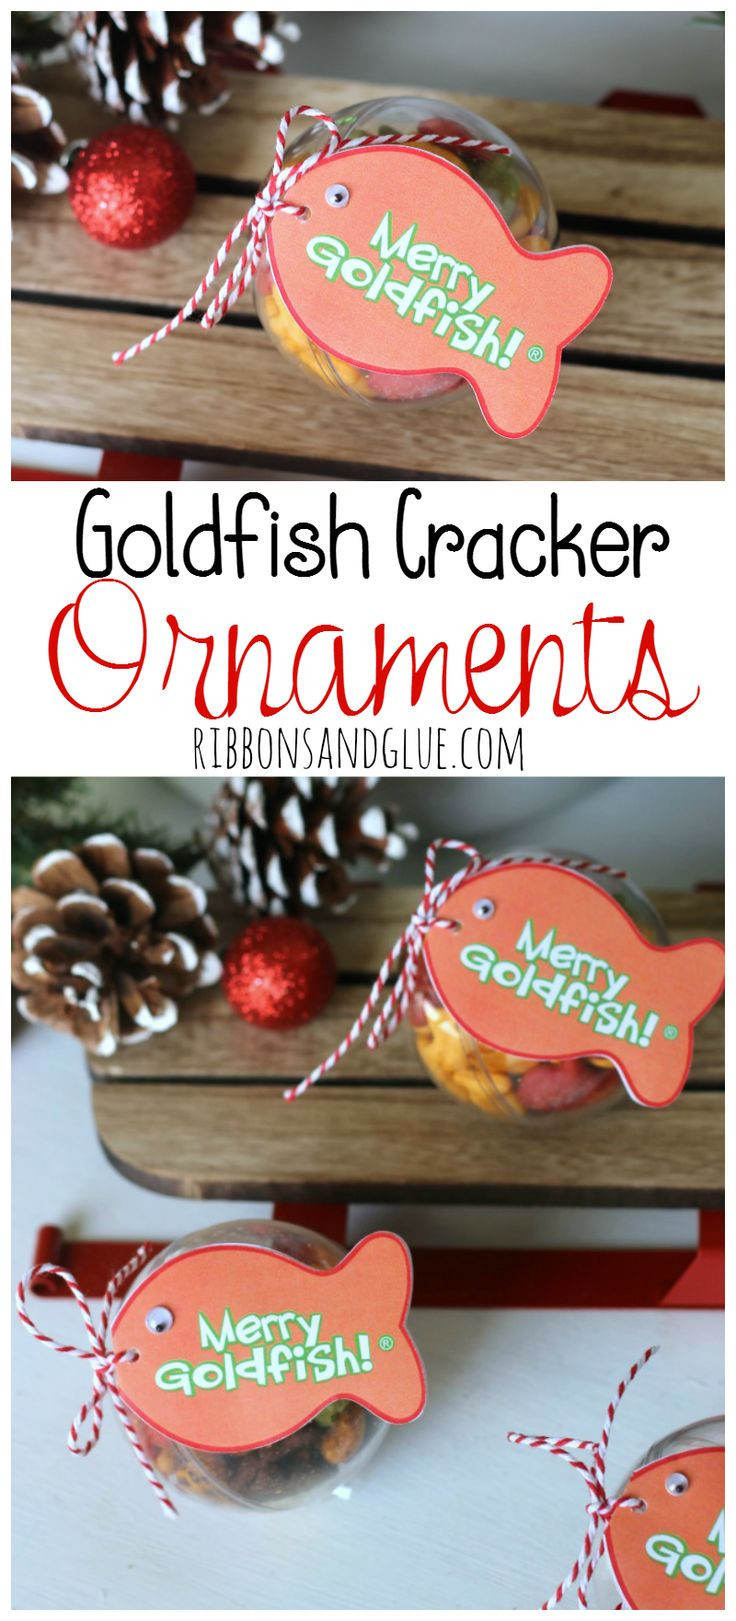 Target Christmas Crackers  17 Best images about Ribbons & Glue Blog on Pinterest